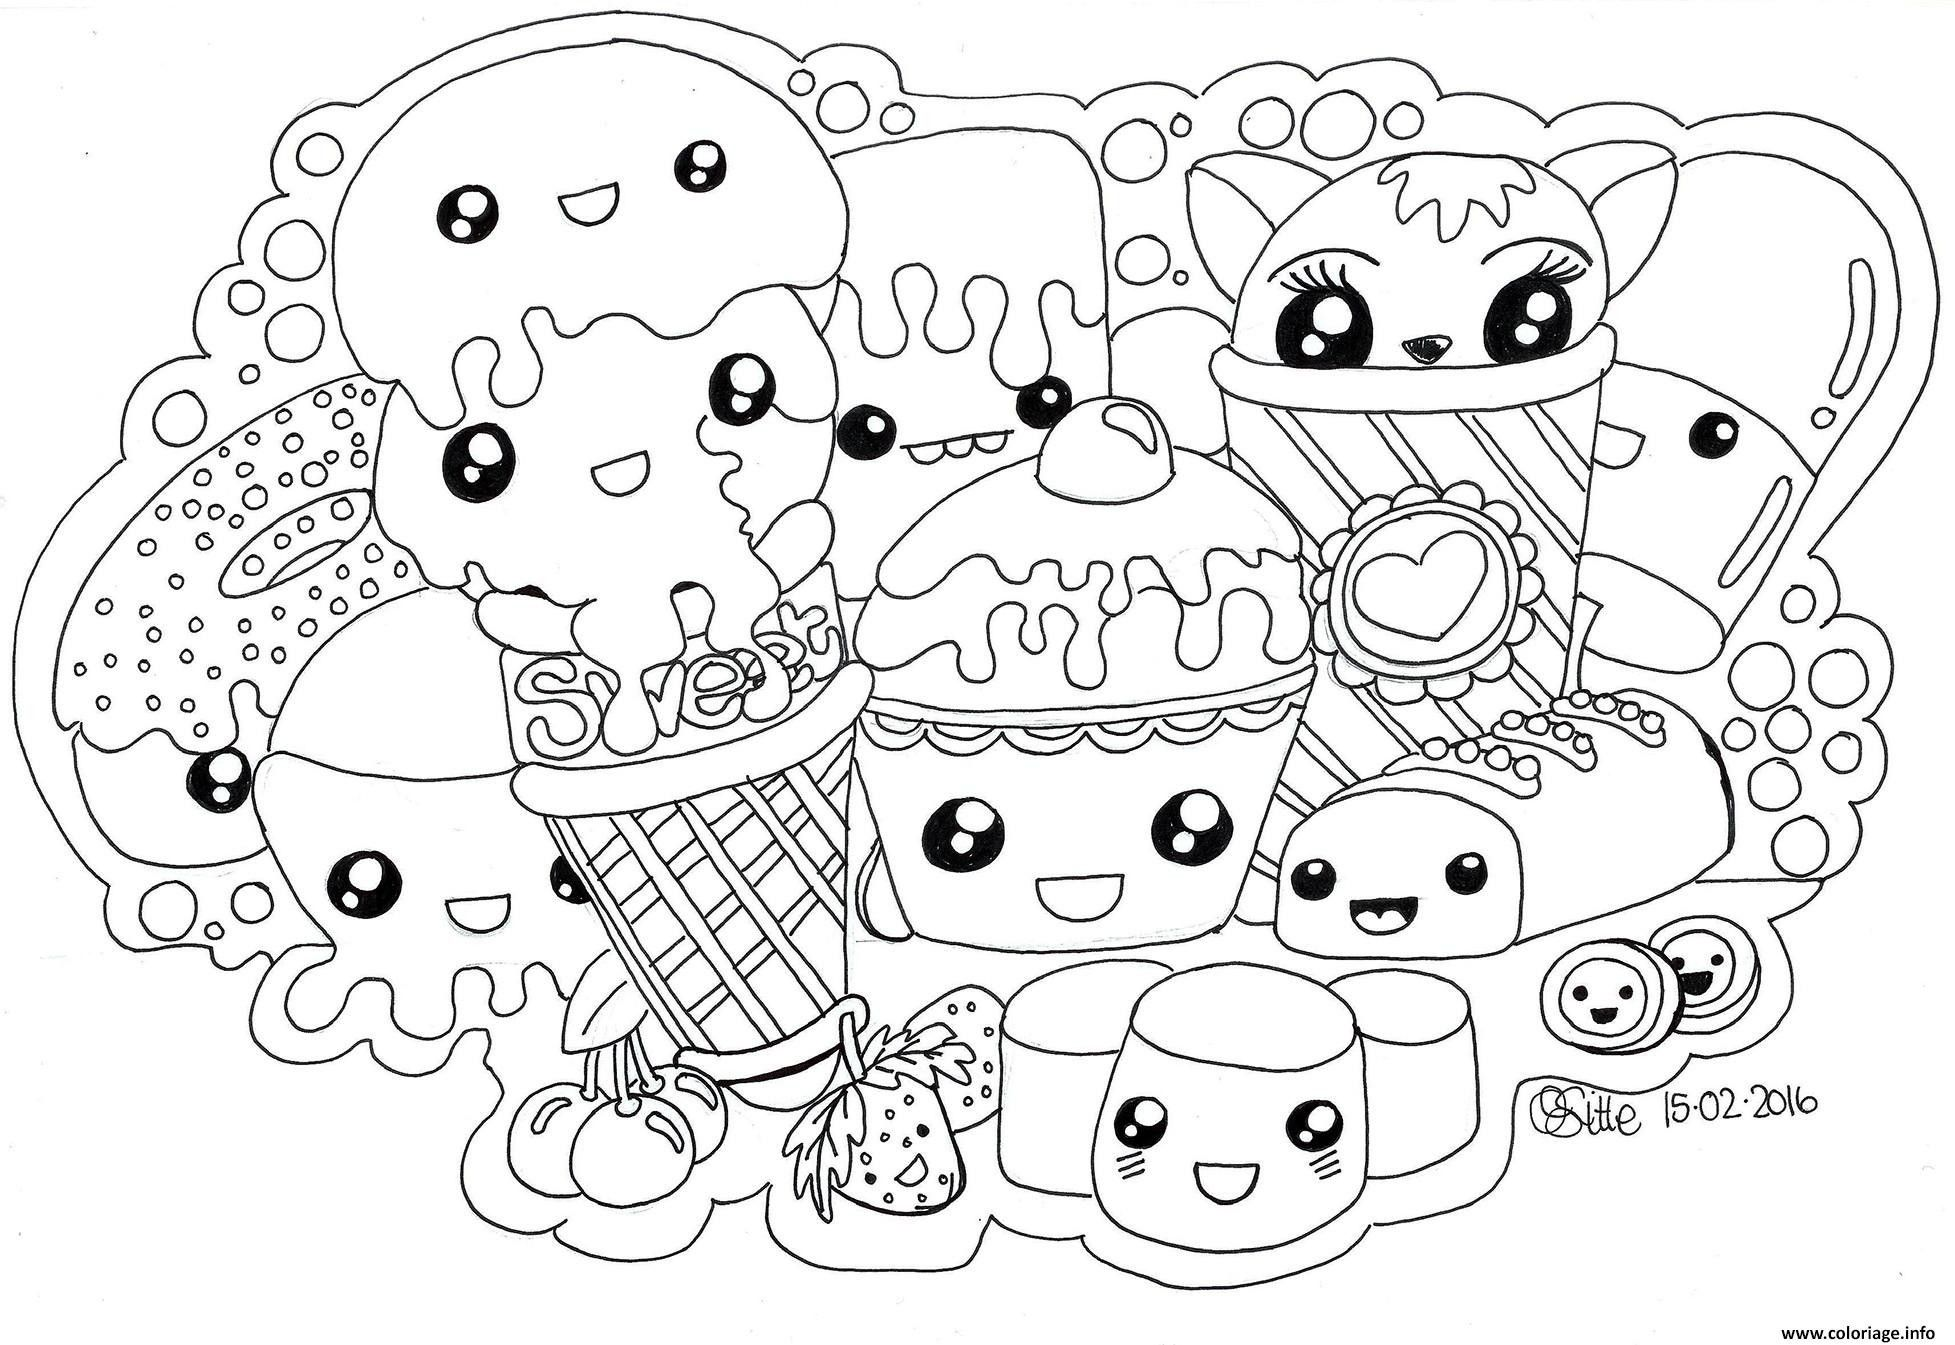 Coloring Unicorn Kawaii A Print L Duilawyerlosangeles Unicorn Coloring Pages Doodle Coloring Cute Coloring Pages